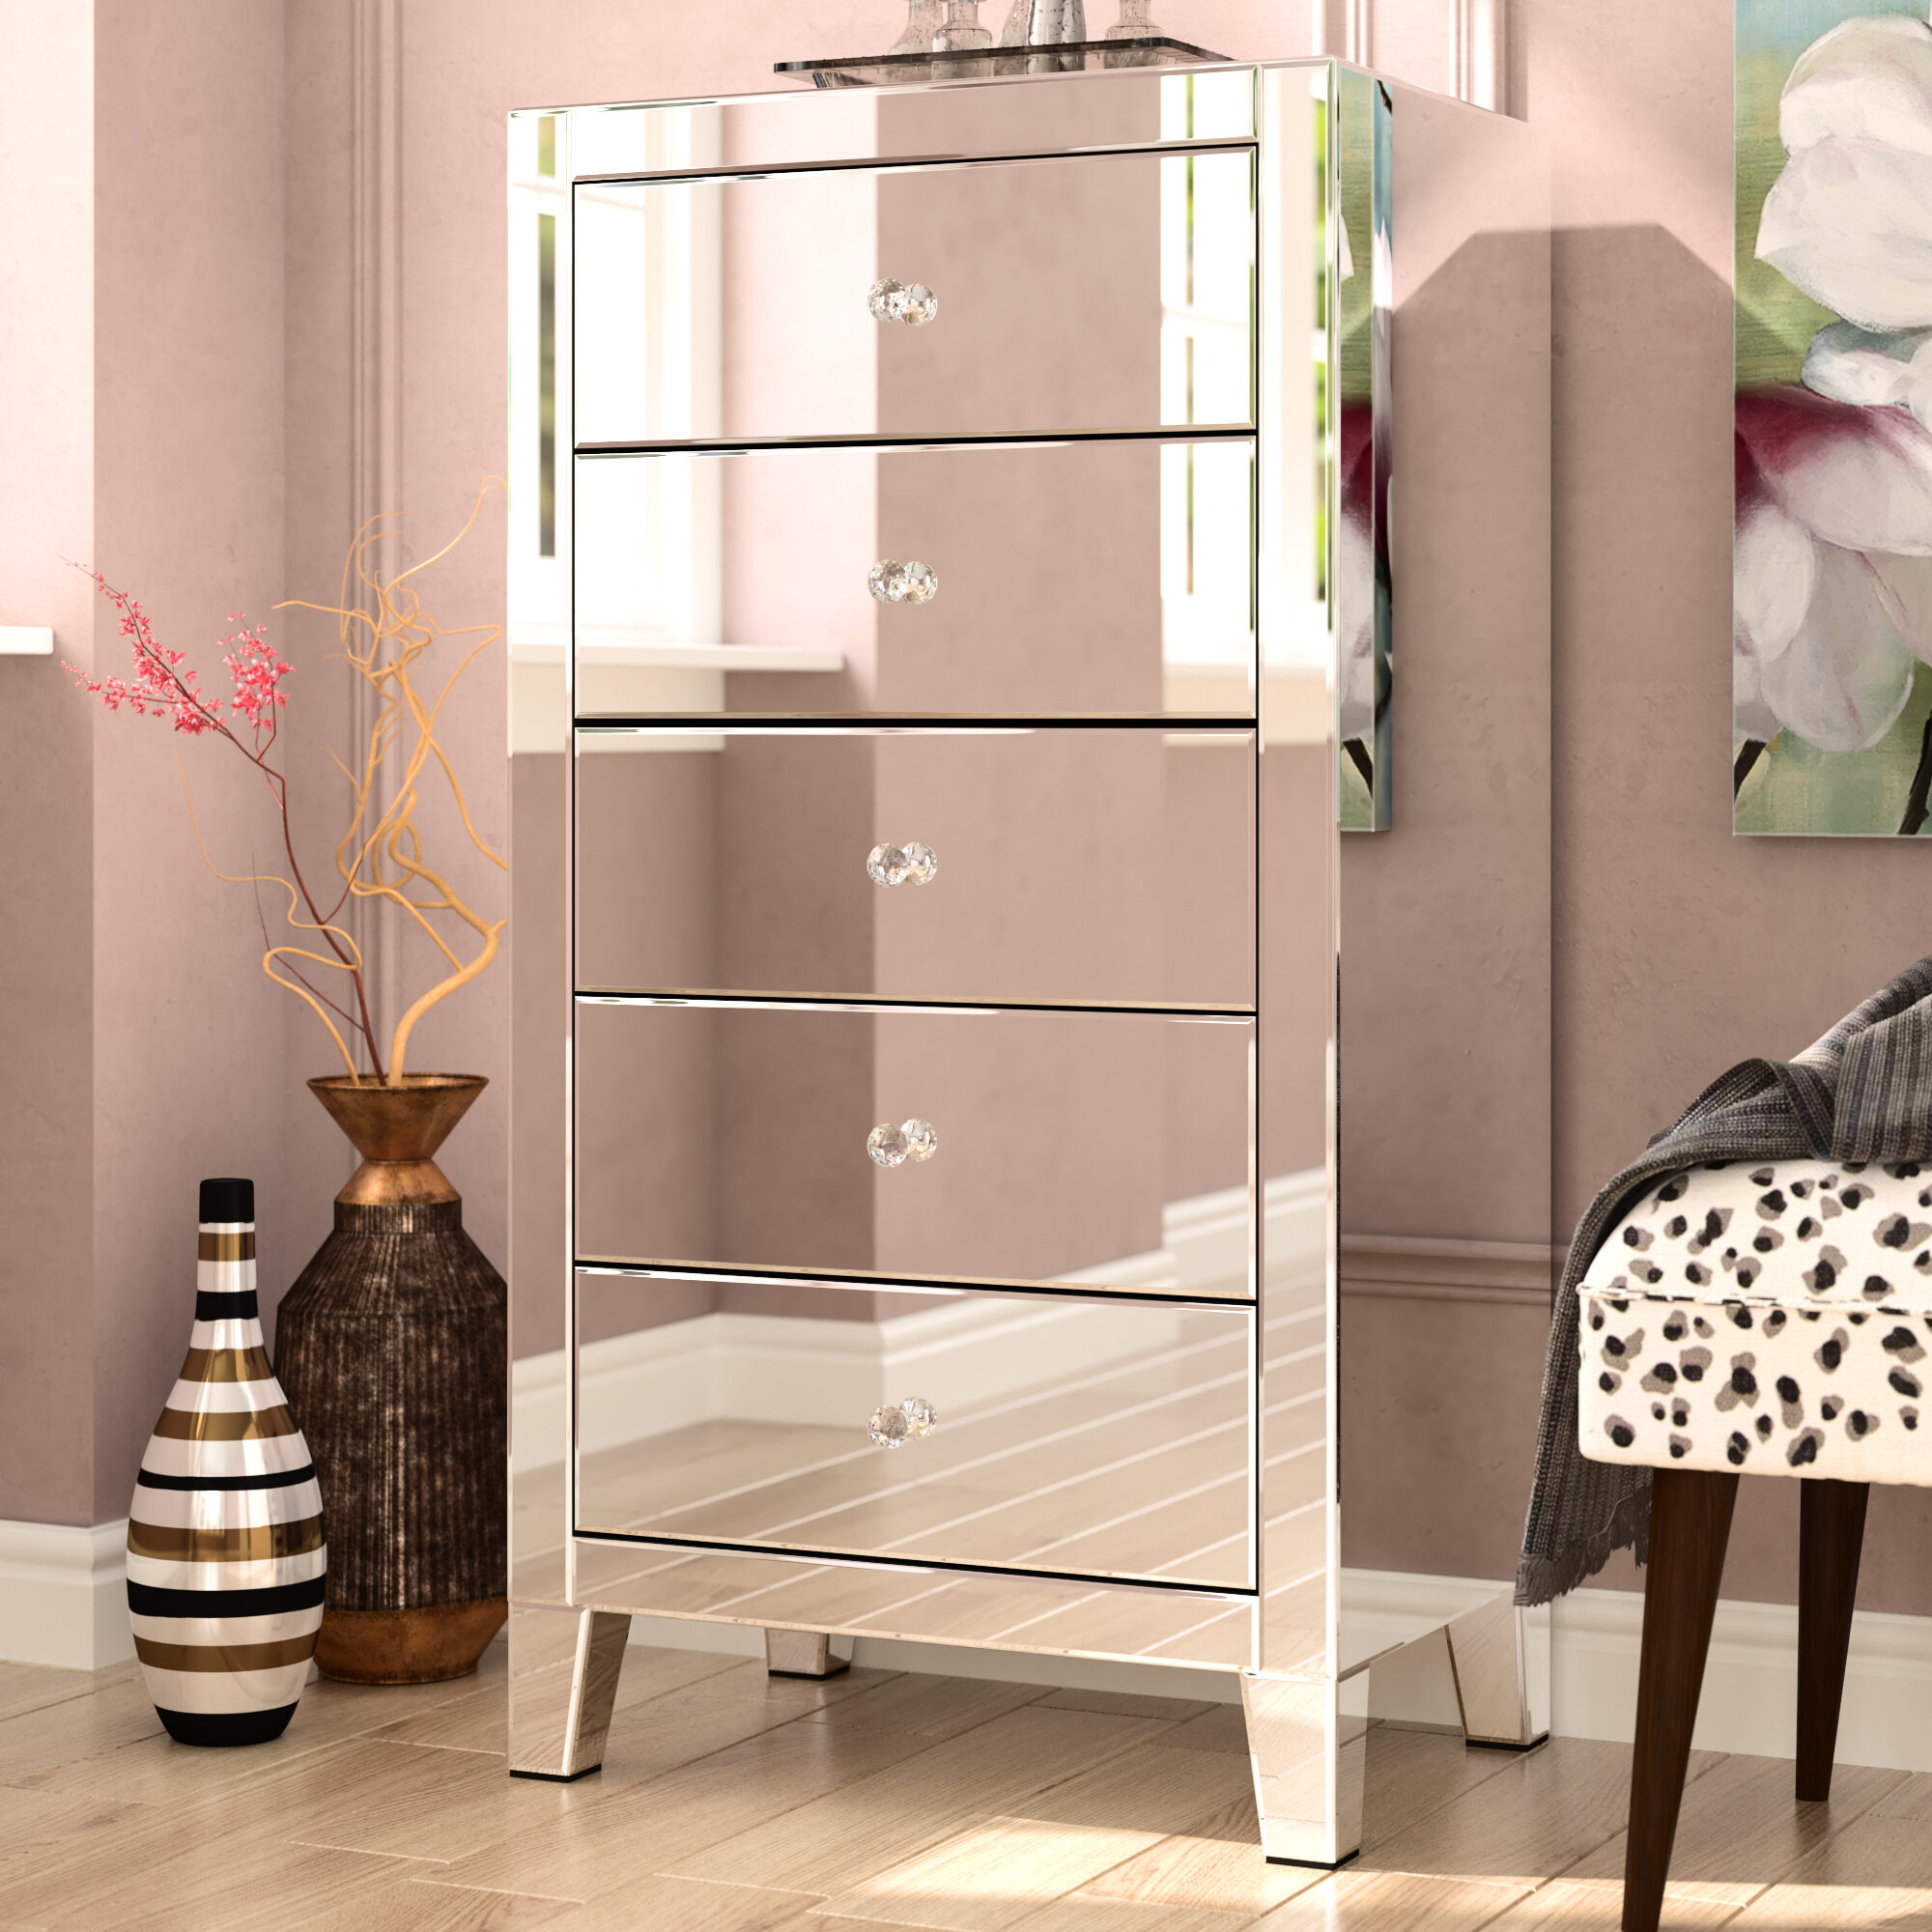 Wayfair Mirrored Tall Dressers Chests You Ll Love In 2021